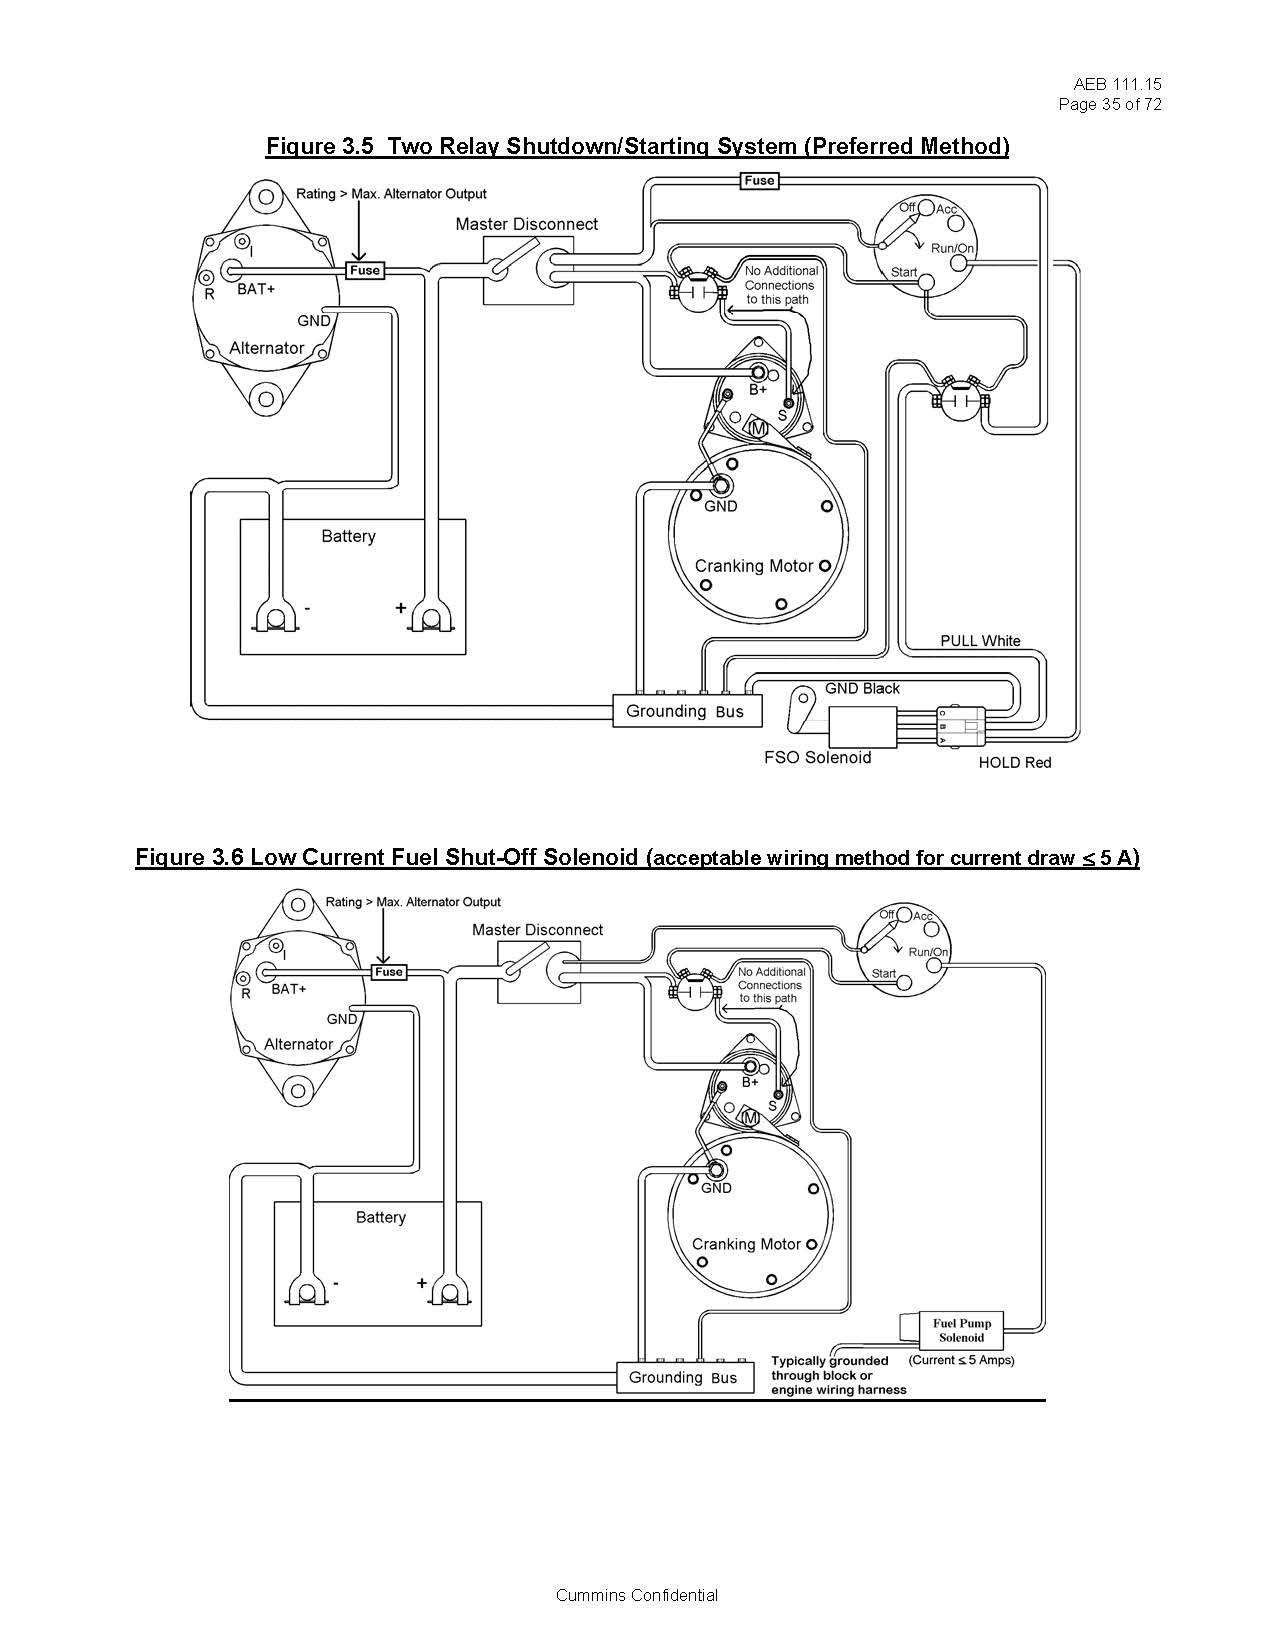 Basic Fuel Shutoff Solenoid And Starter Wiring Information Pump 220 Volt Diagram Further 240 Motor Pages From Cummins Page 2